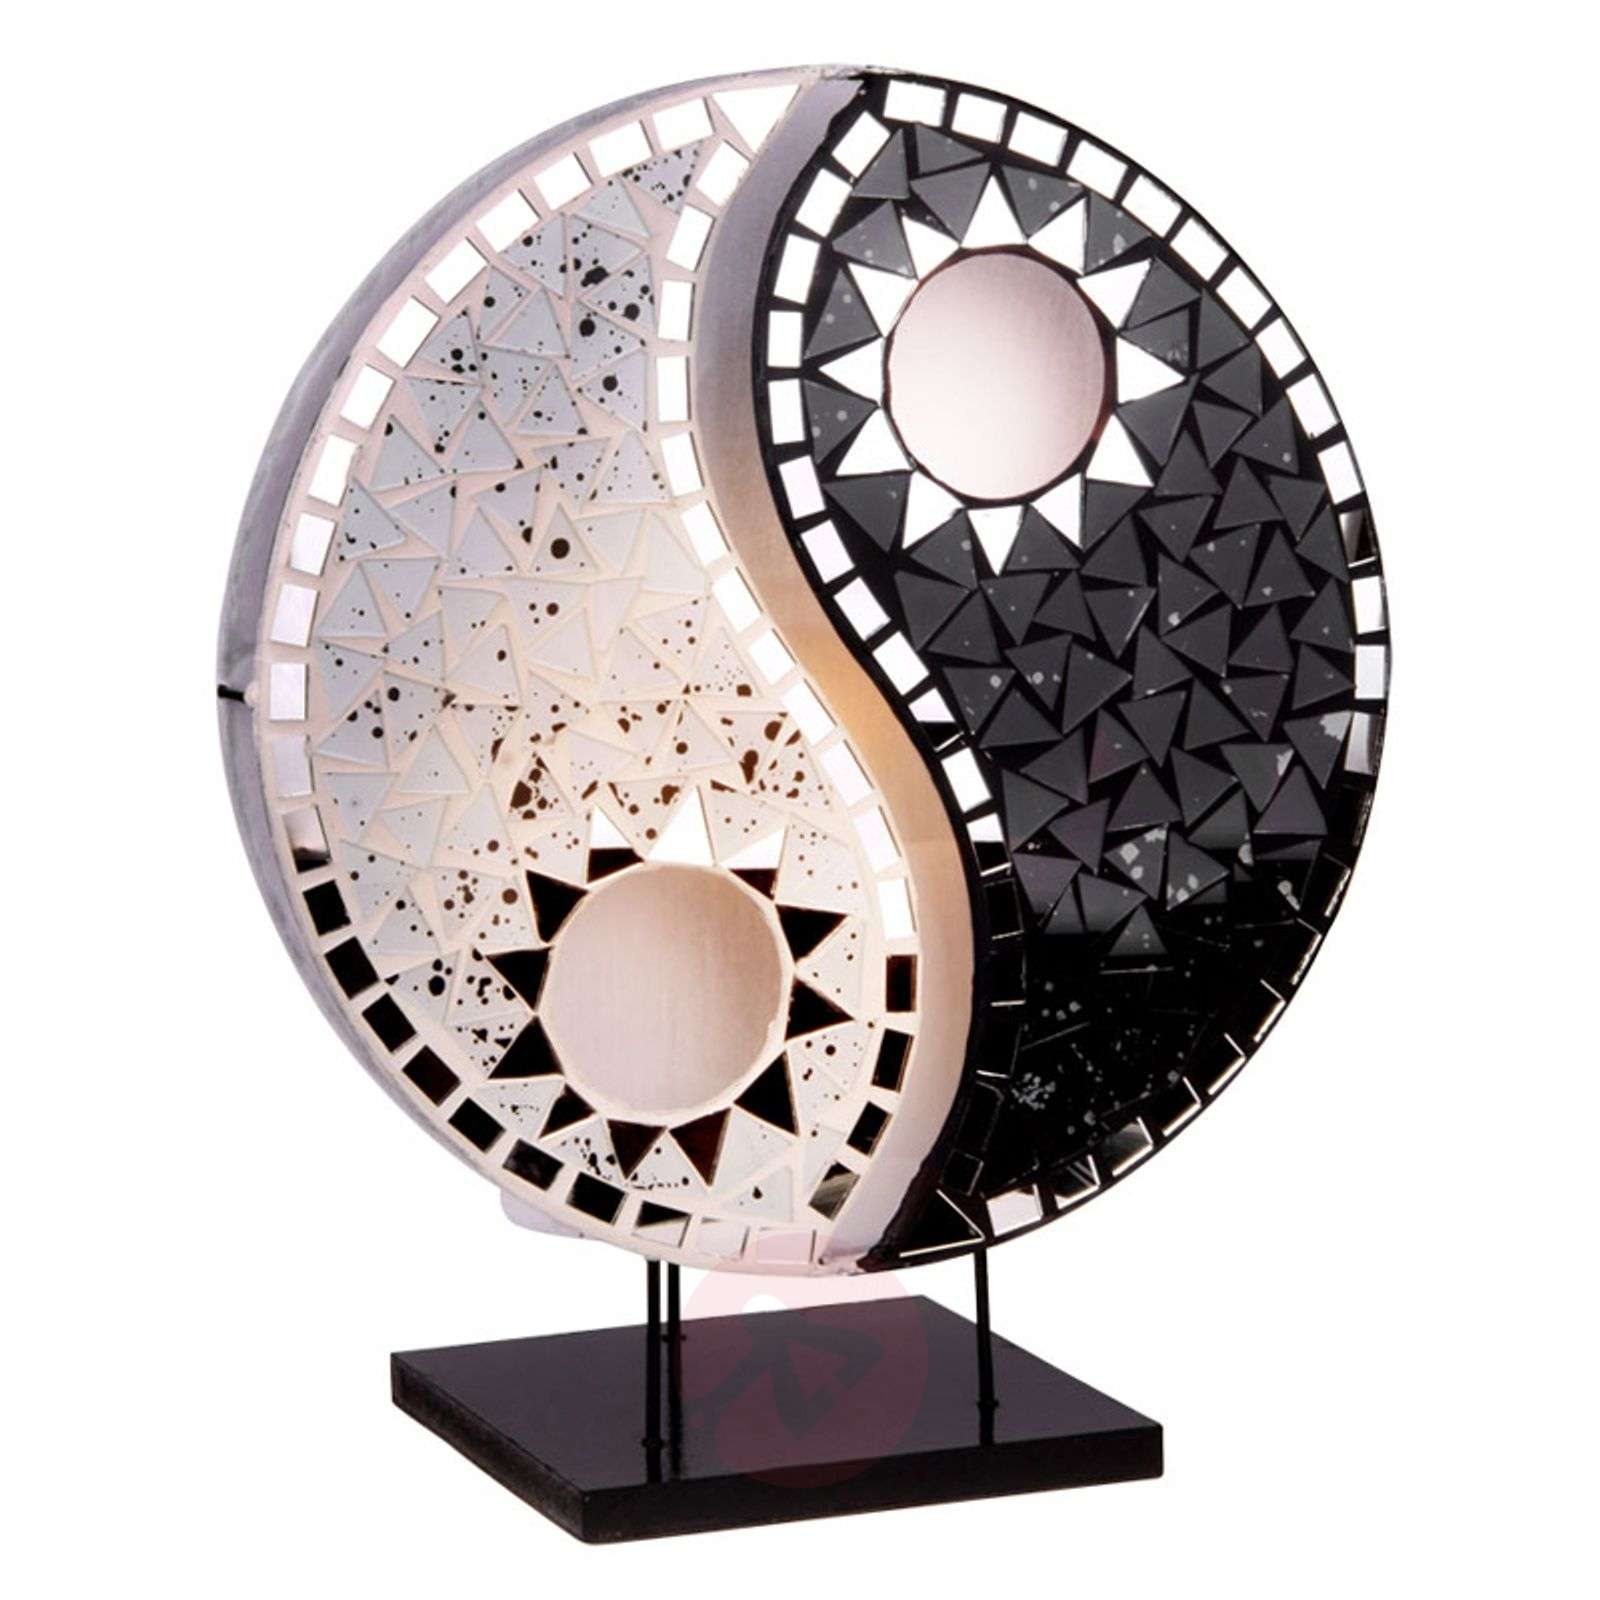 Beautiful design table lamp Ying Yang black white-9655258-01